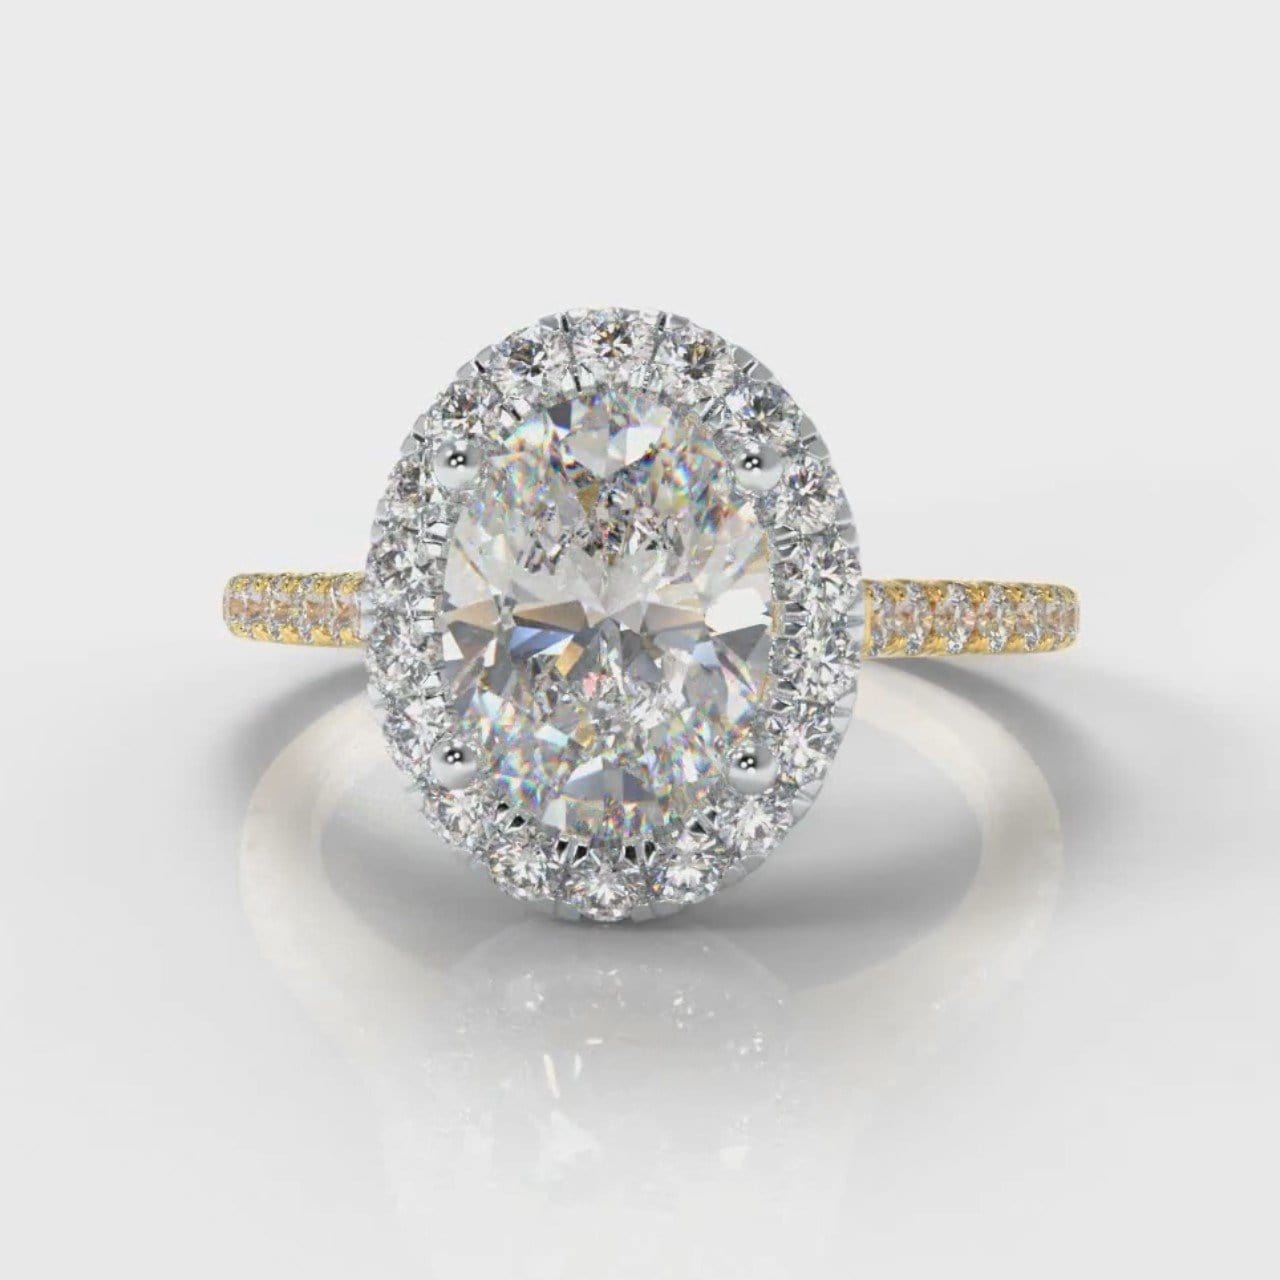 Petite Micropavé Oval Diamond Halo Engagement Ring - Two Tone Yellow Gold